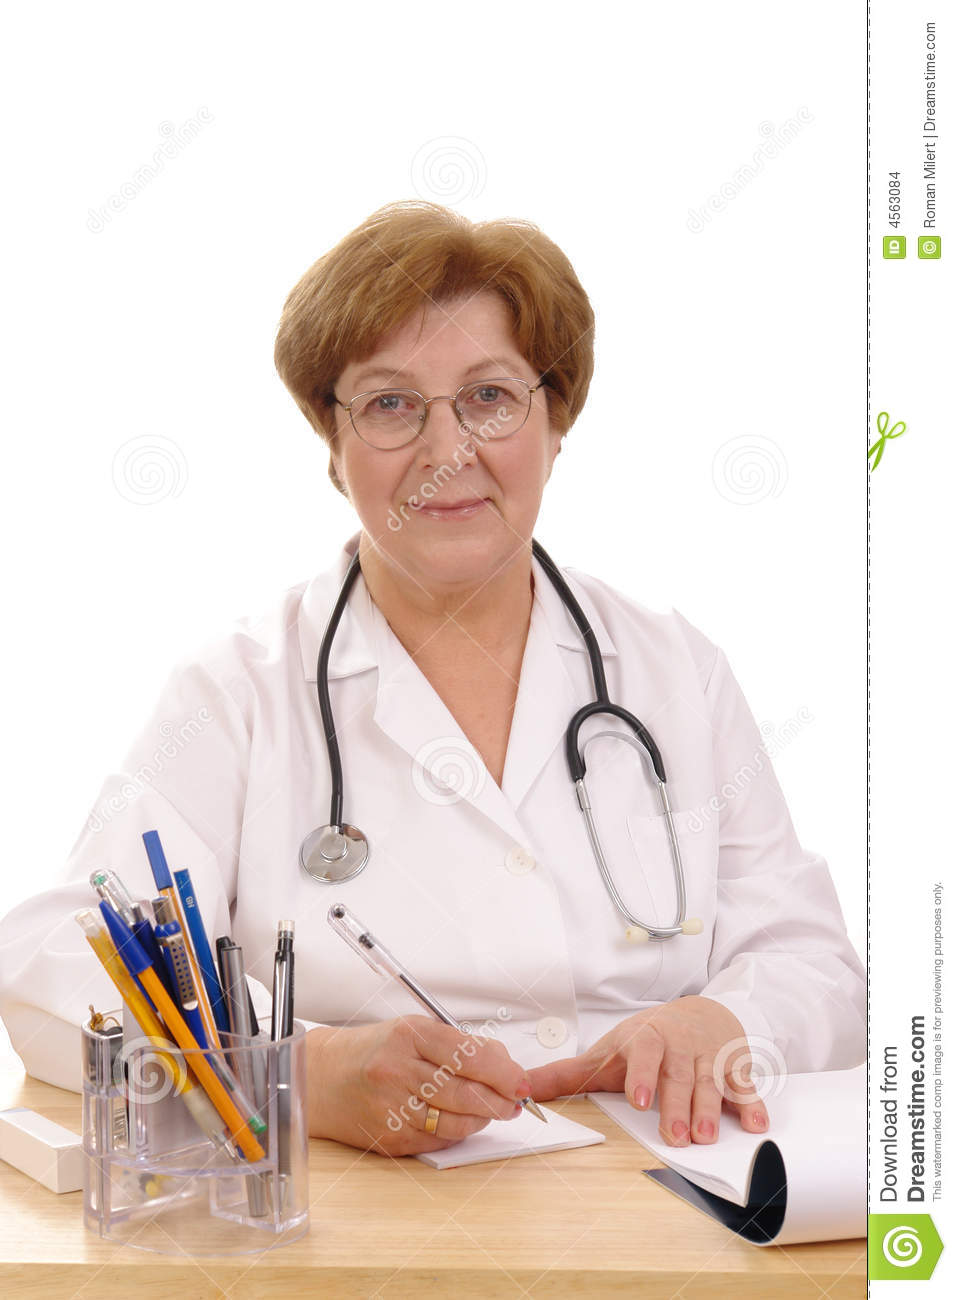 essay my family doctor A family doctor or a general doc' has been part of the health care picture ever since medicine began (physicians 59) general practitioners are primary care physicians and may sometimes be referred to as family practice physicians family and doctor essayand then usually my.